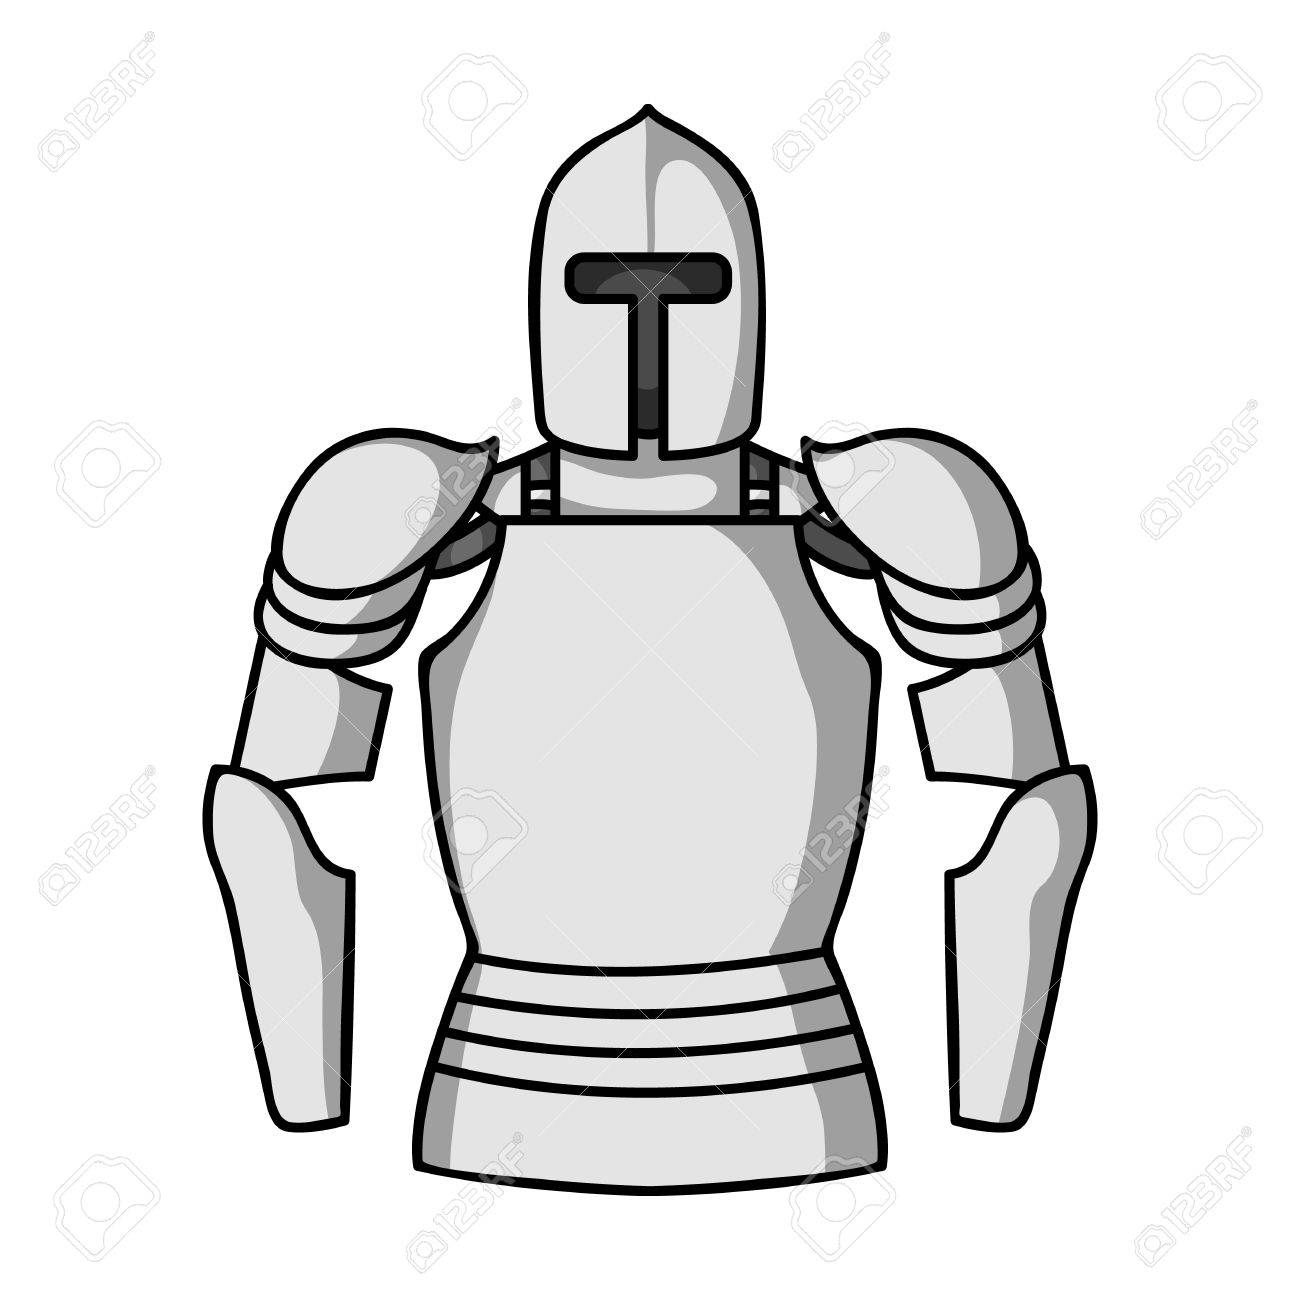 Armored hand clipart svg royalty free download Armor Clipart Free & Free Clip Art Images #19680 - Clipartimage.com svg royalty free download